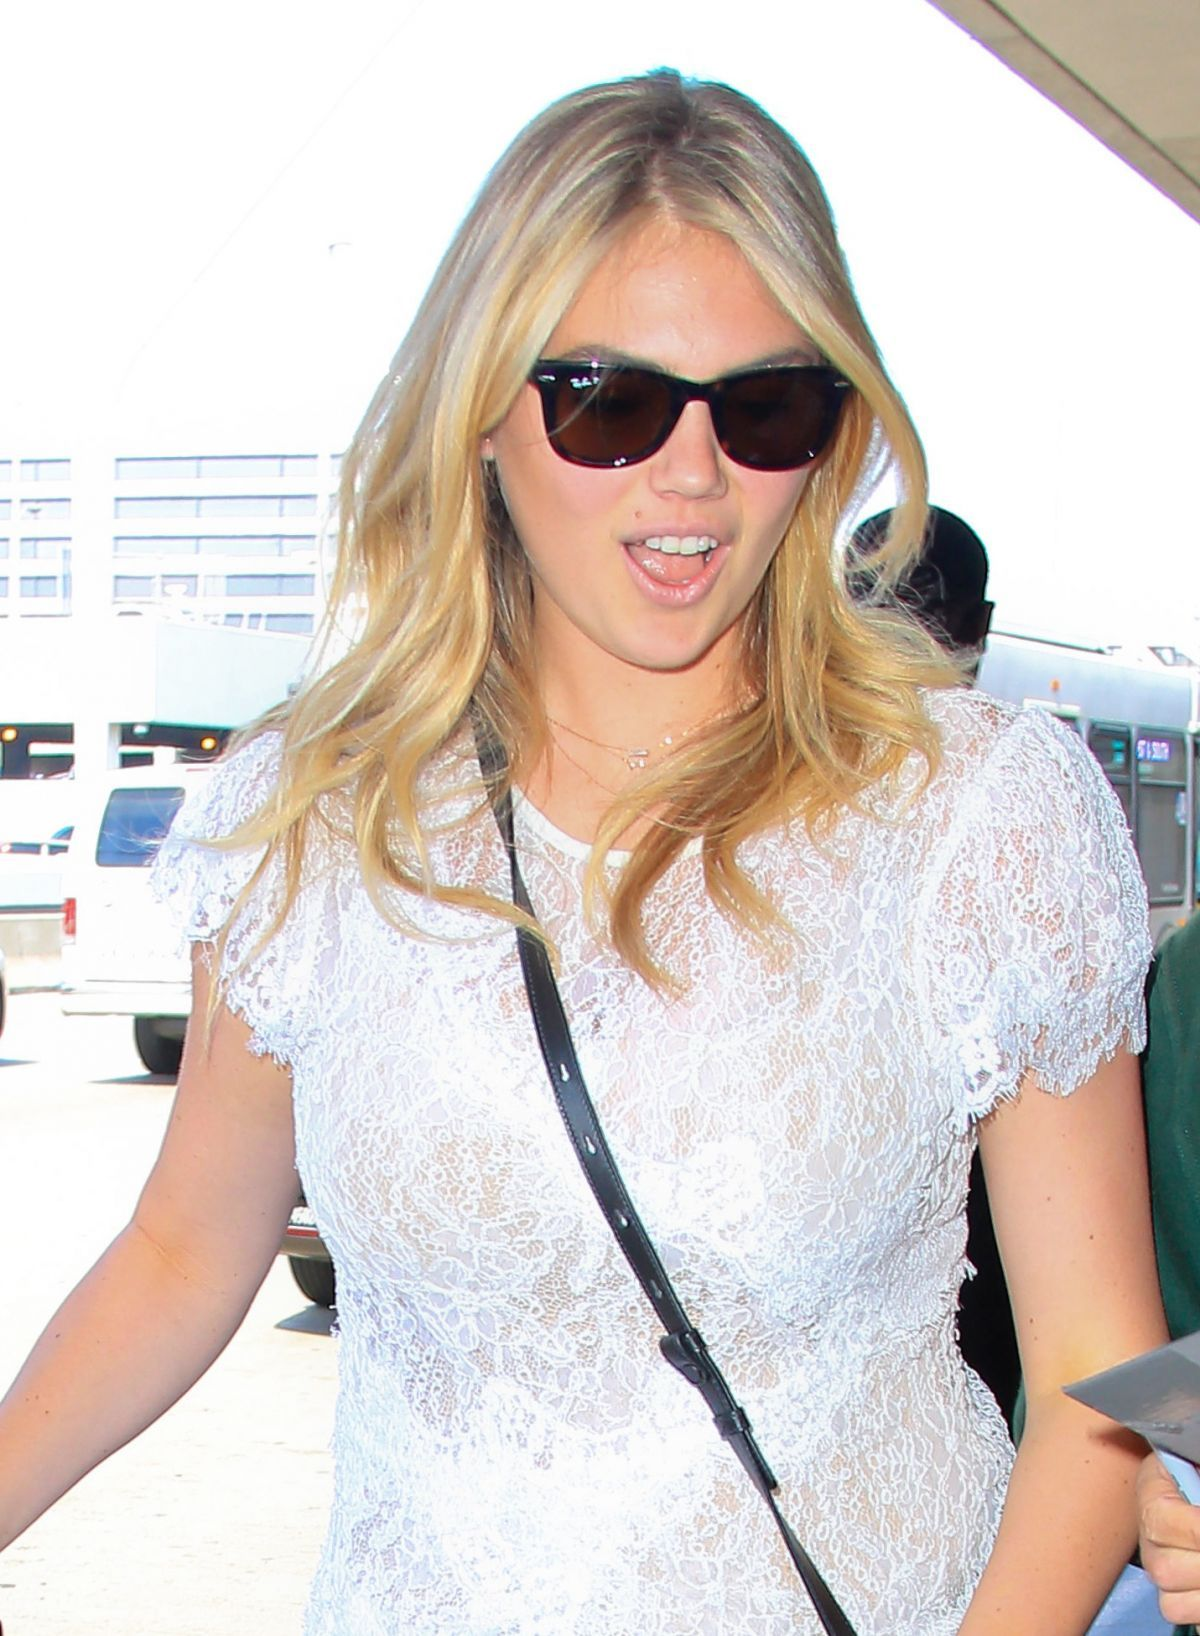 Kate Upton At Lax Airport